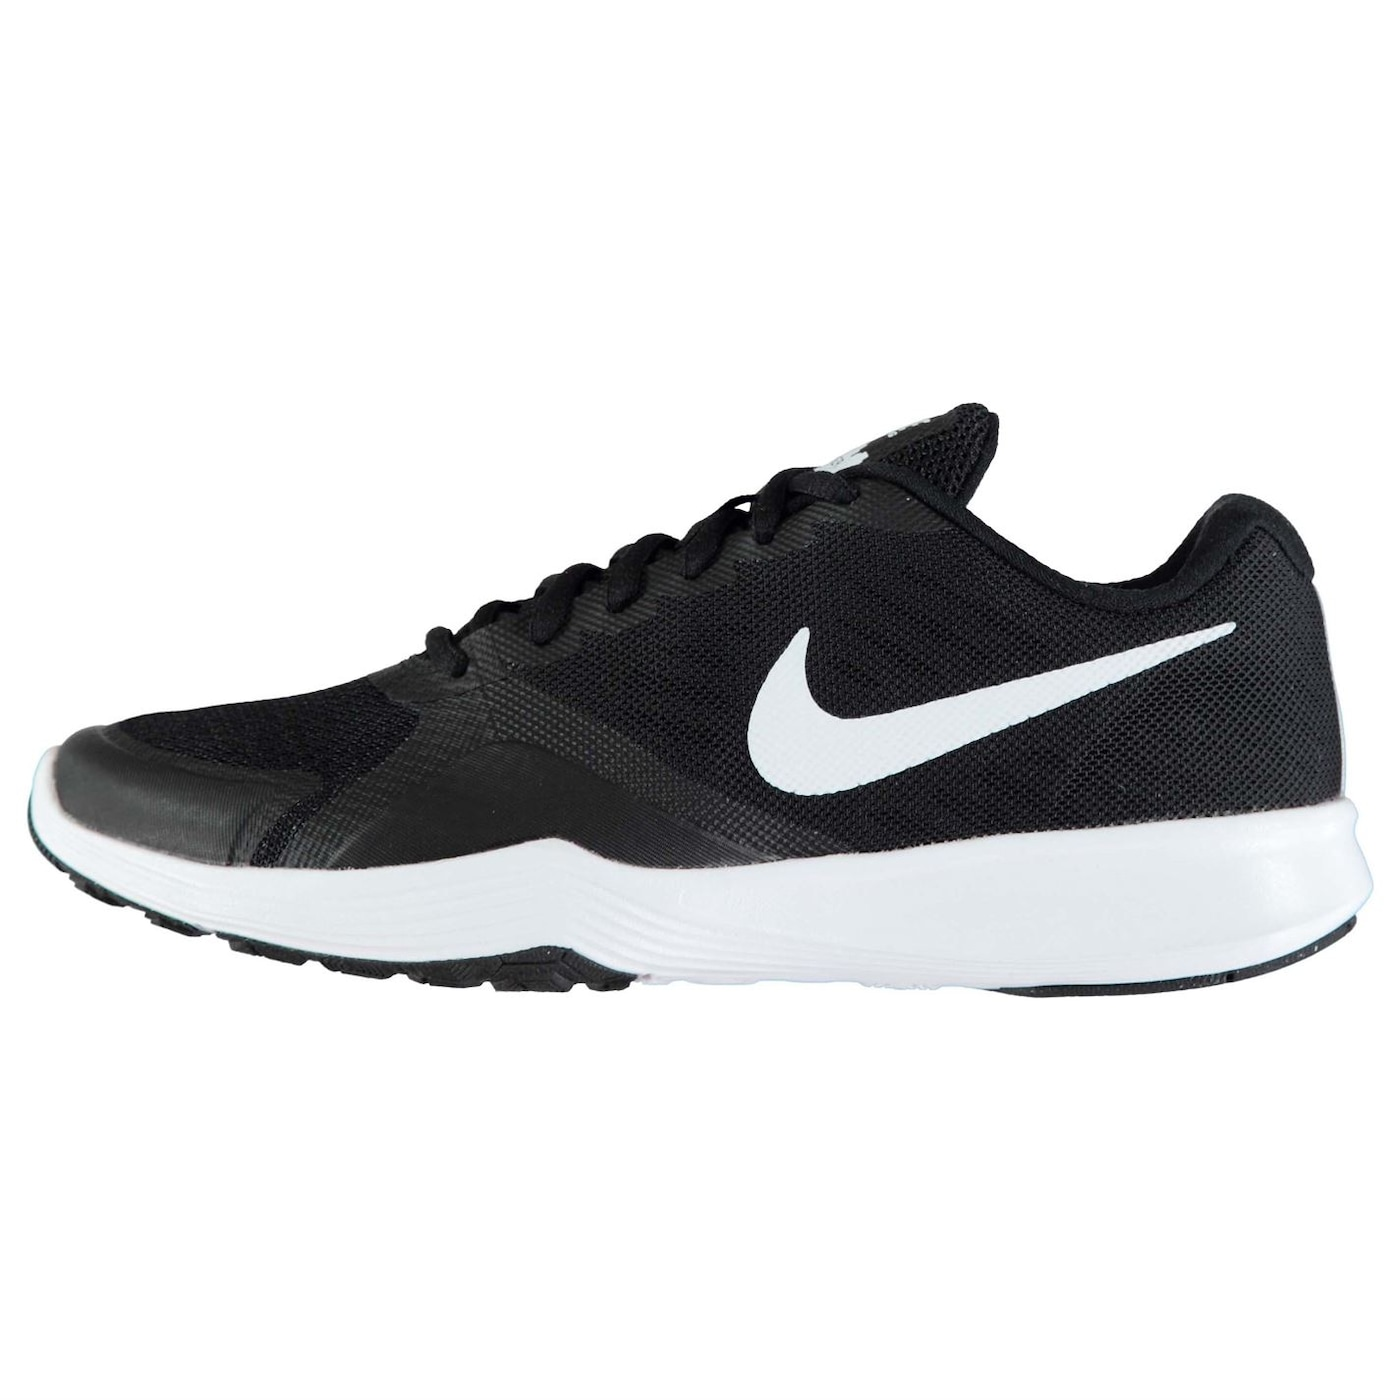 Nike City Training Shoes Ladies